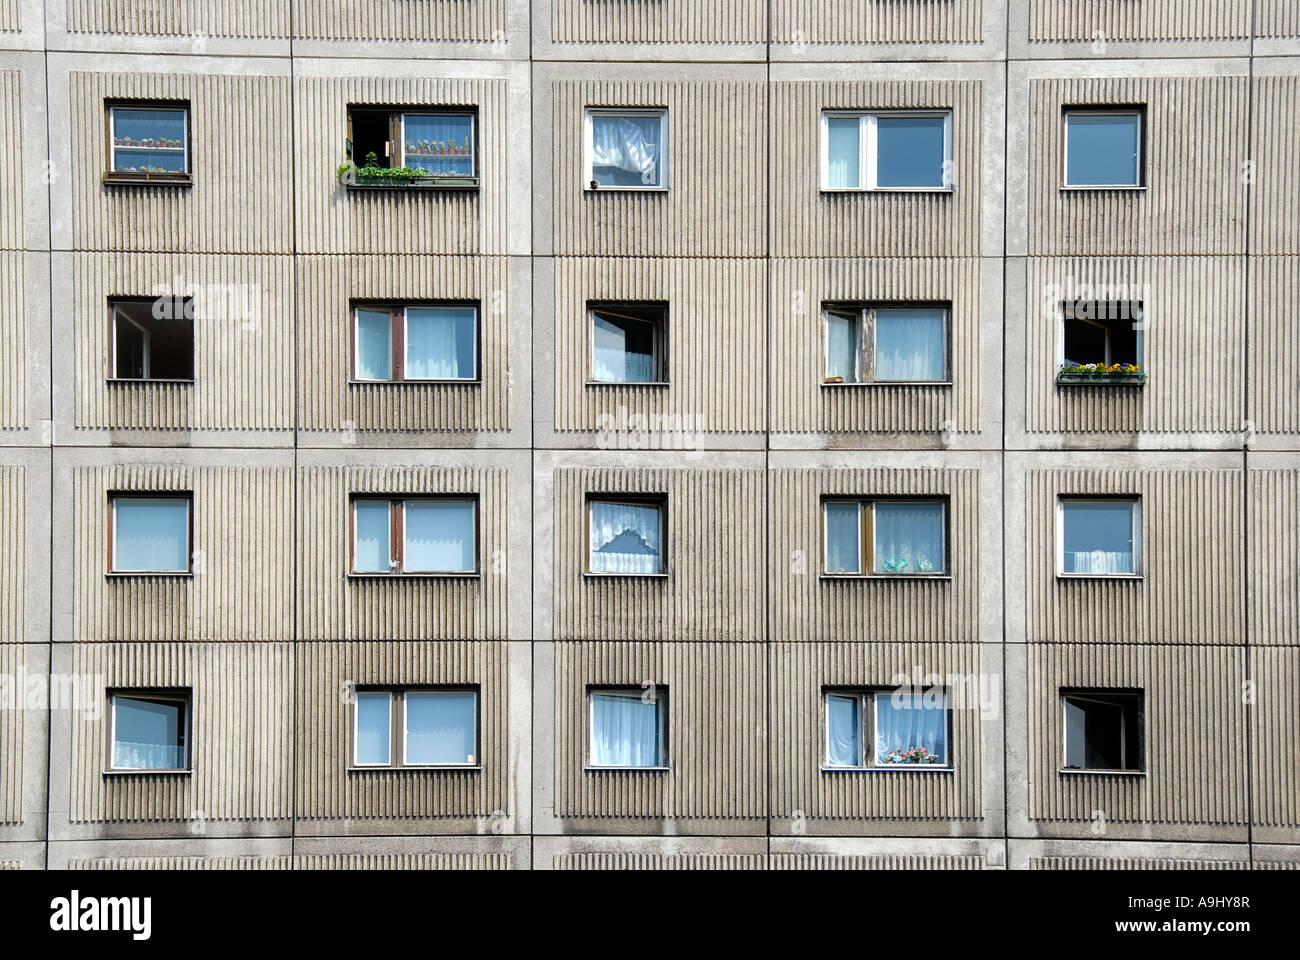 Sulky living socialistic style appartments Berlin Germany Stock Photo